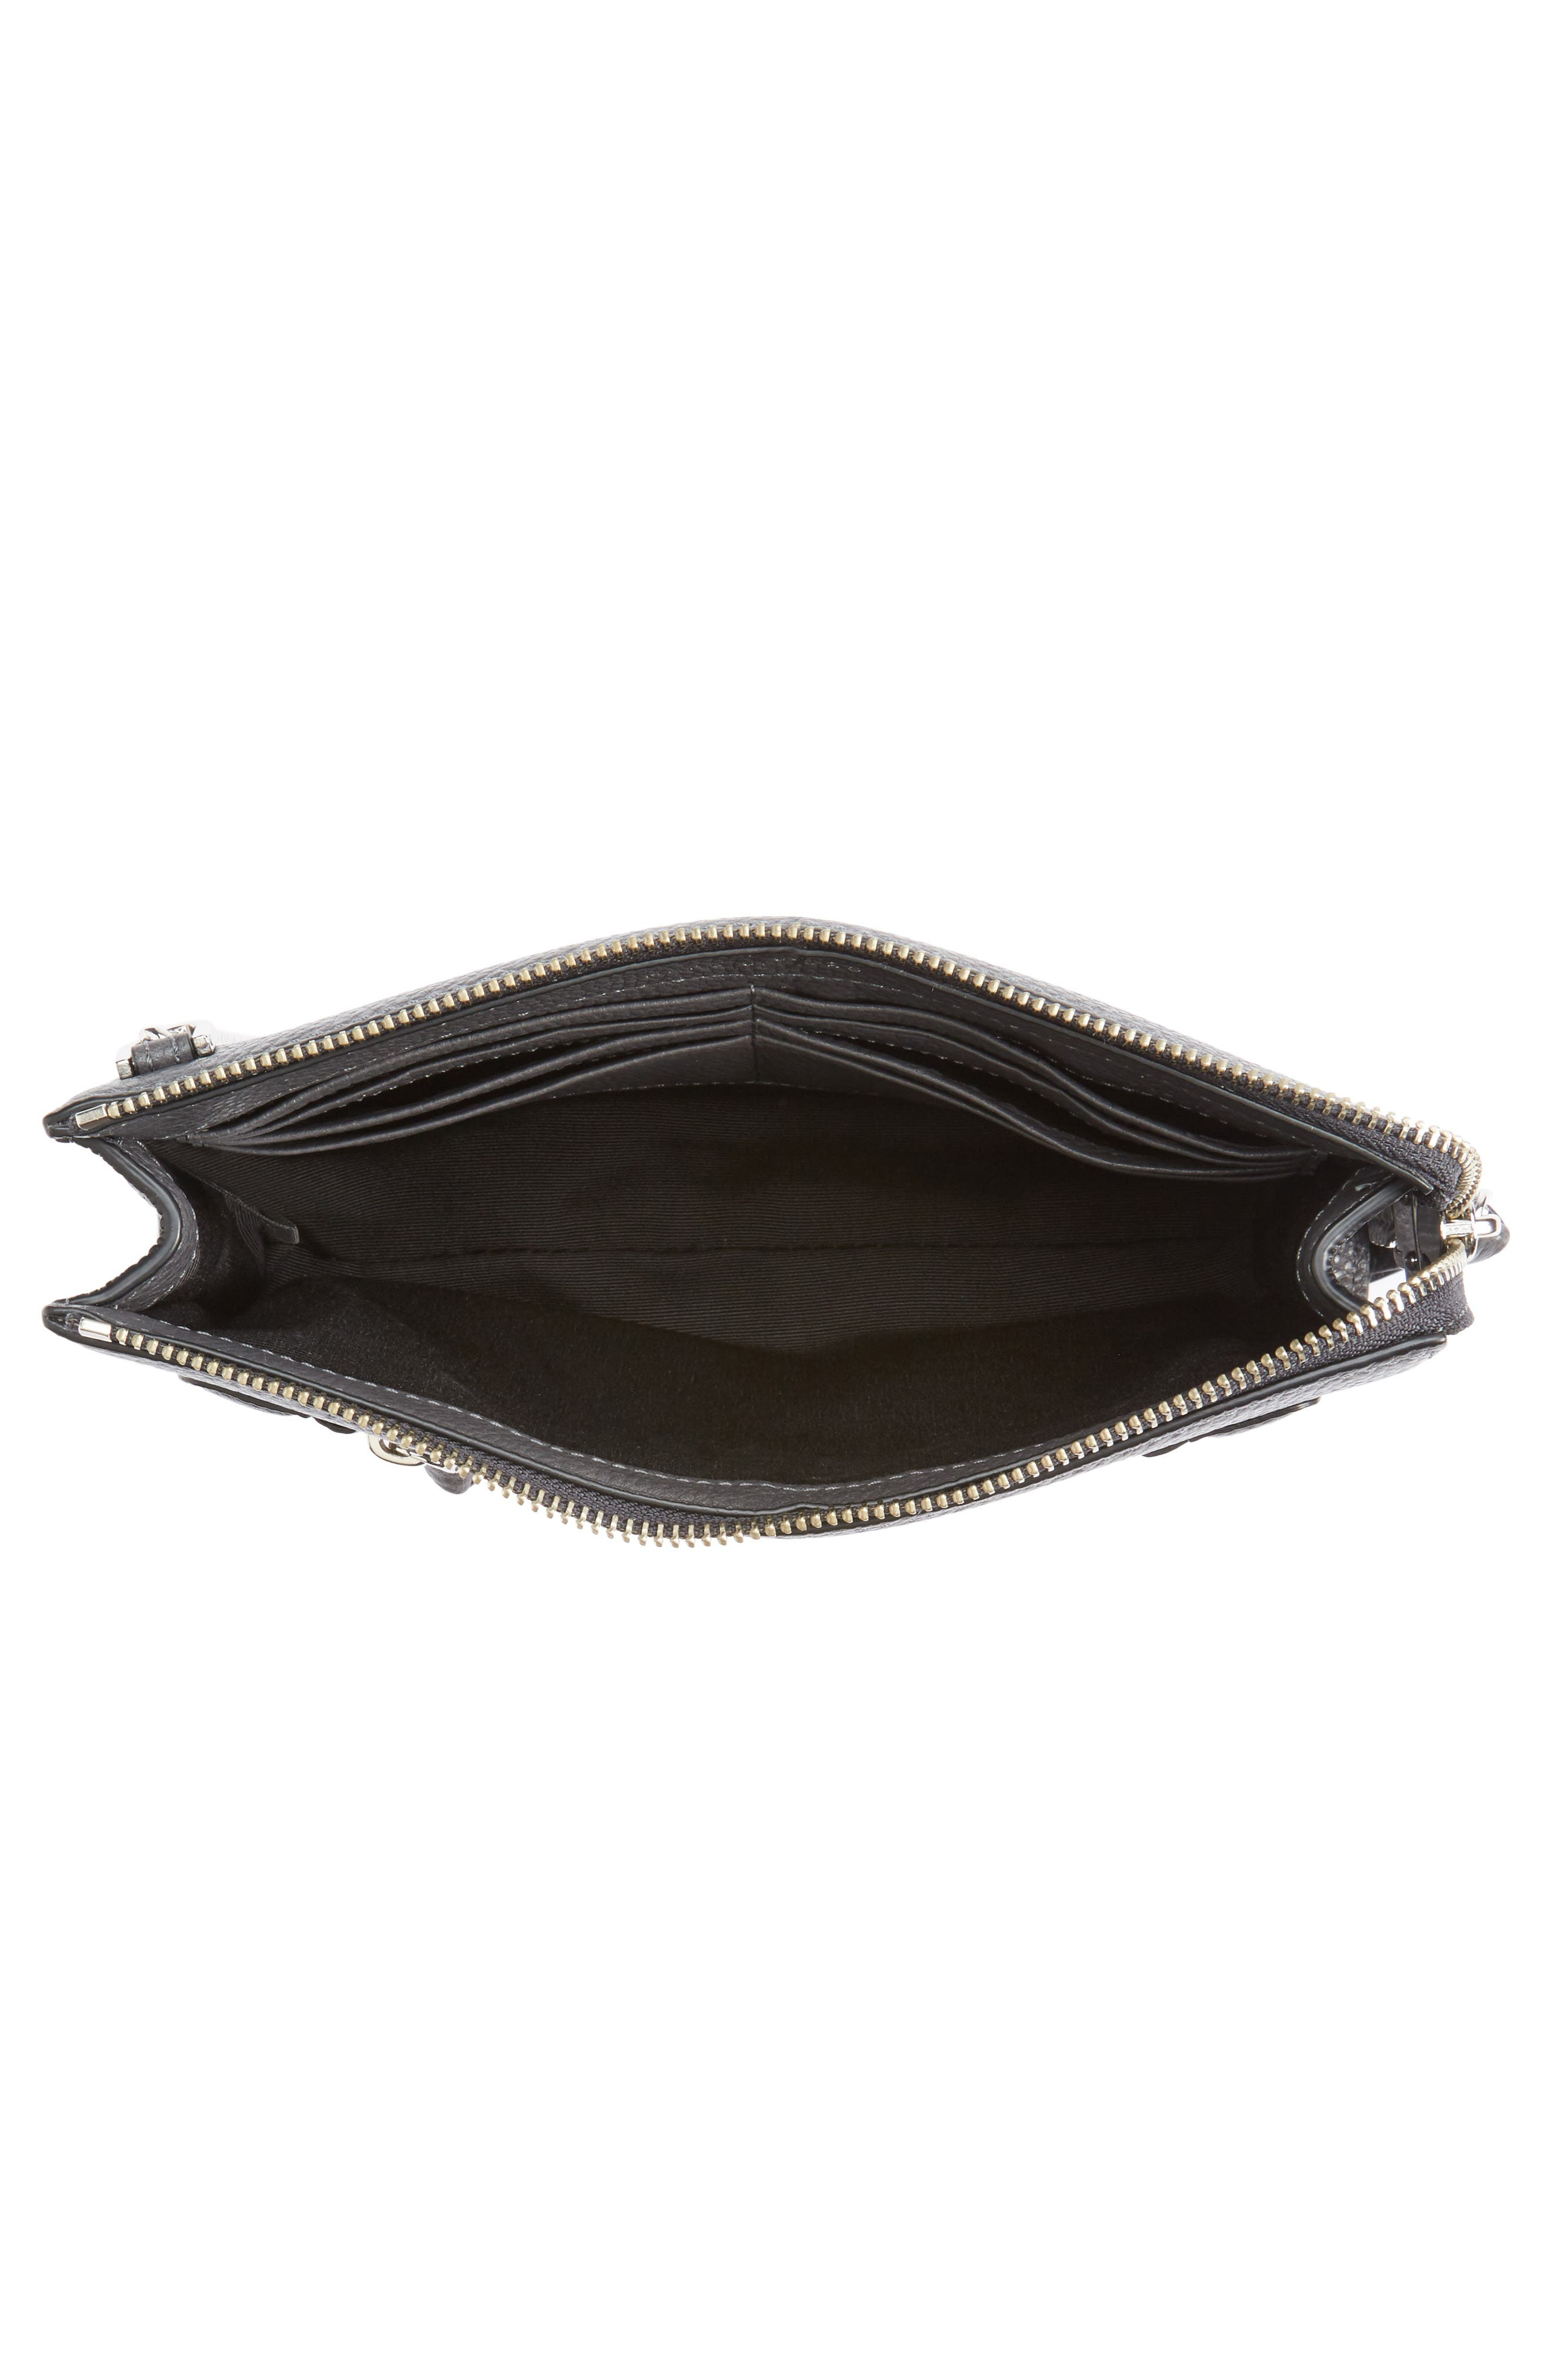 Alternate Image 3  - MARC JACOBS Small Recruit Leather Crossbody Bag